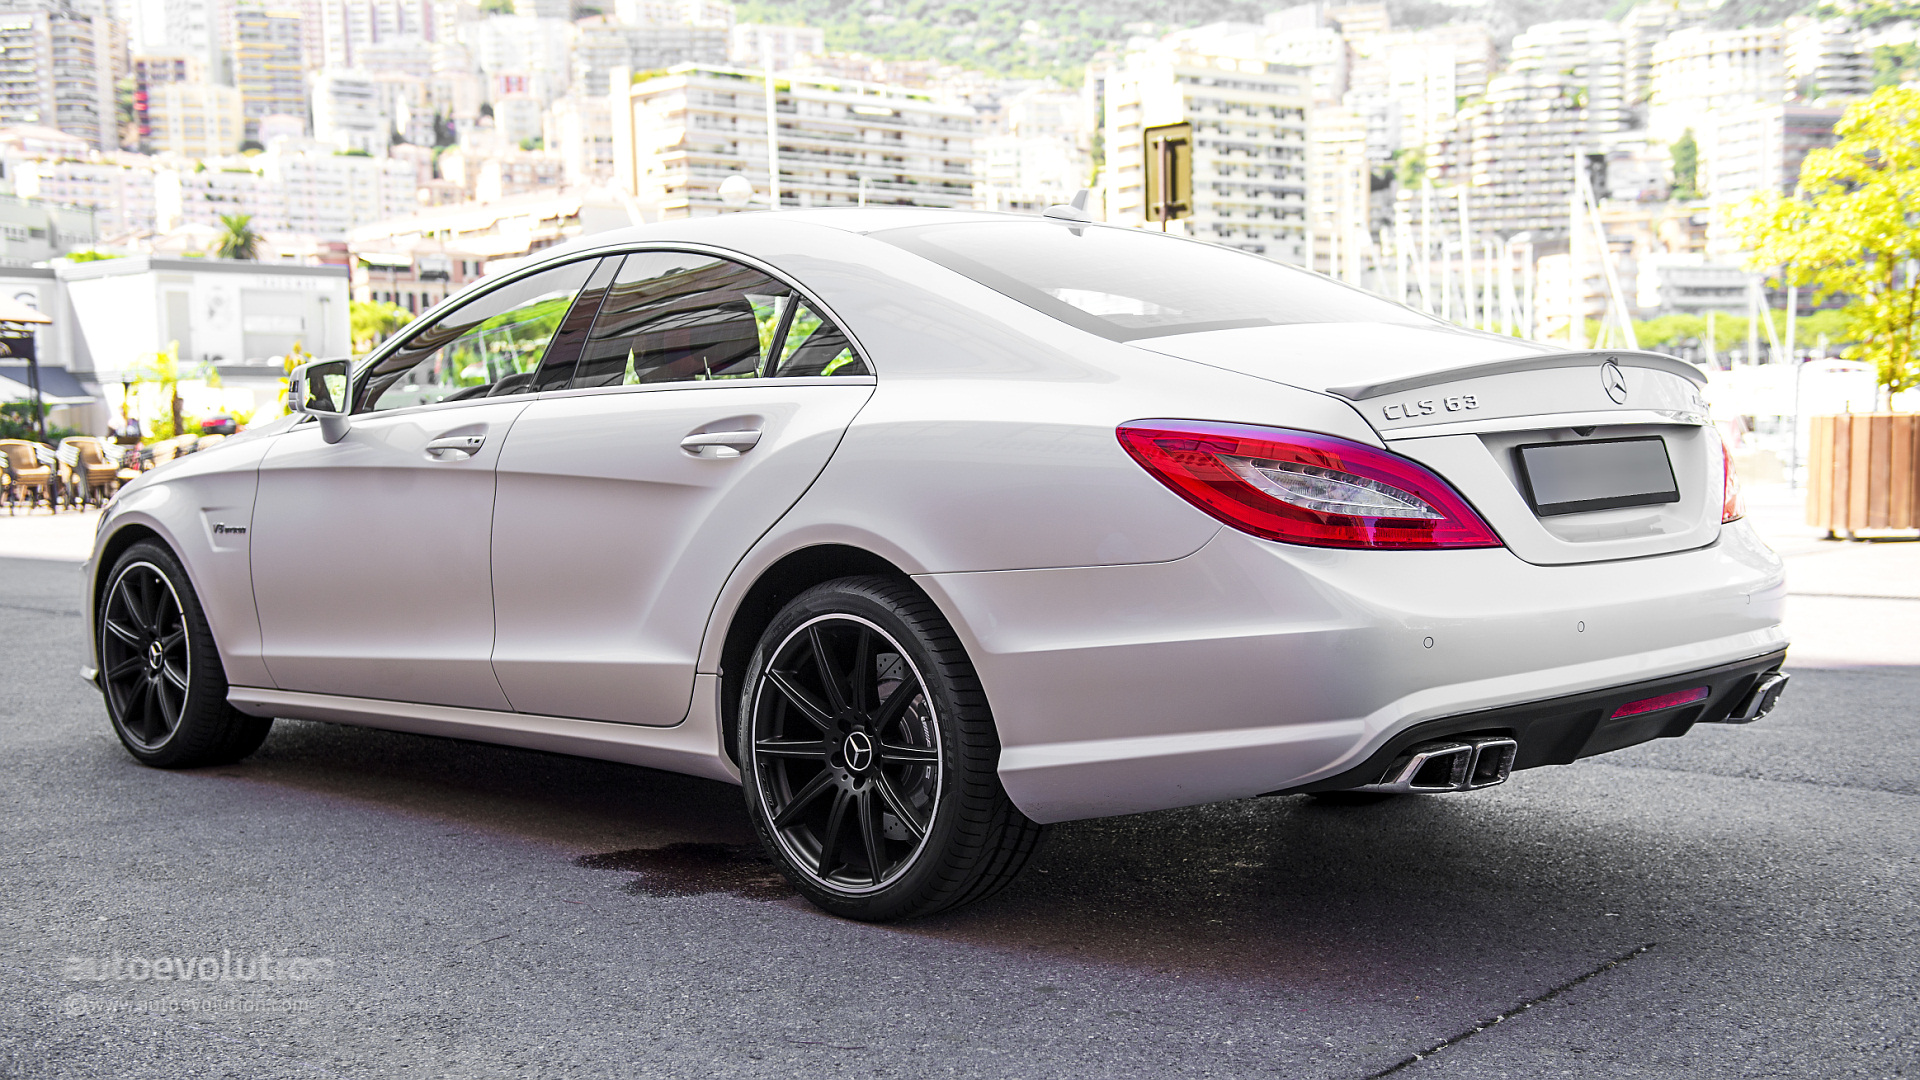 2014 mercedes benz cls63 amg 4matic review autoevolution for Mercedes benz amg cls